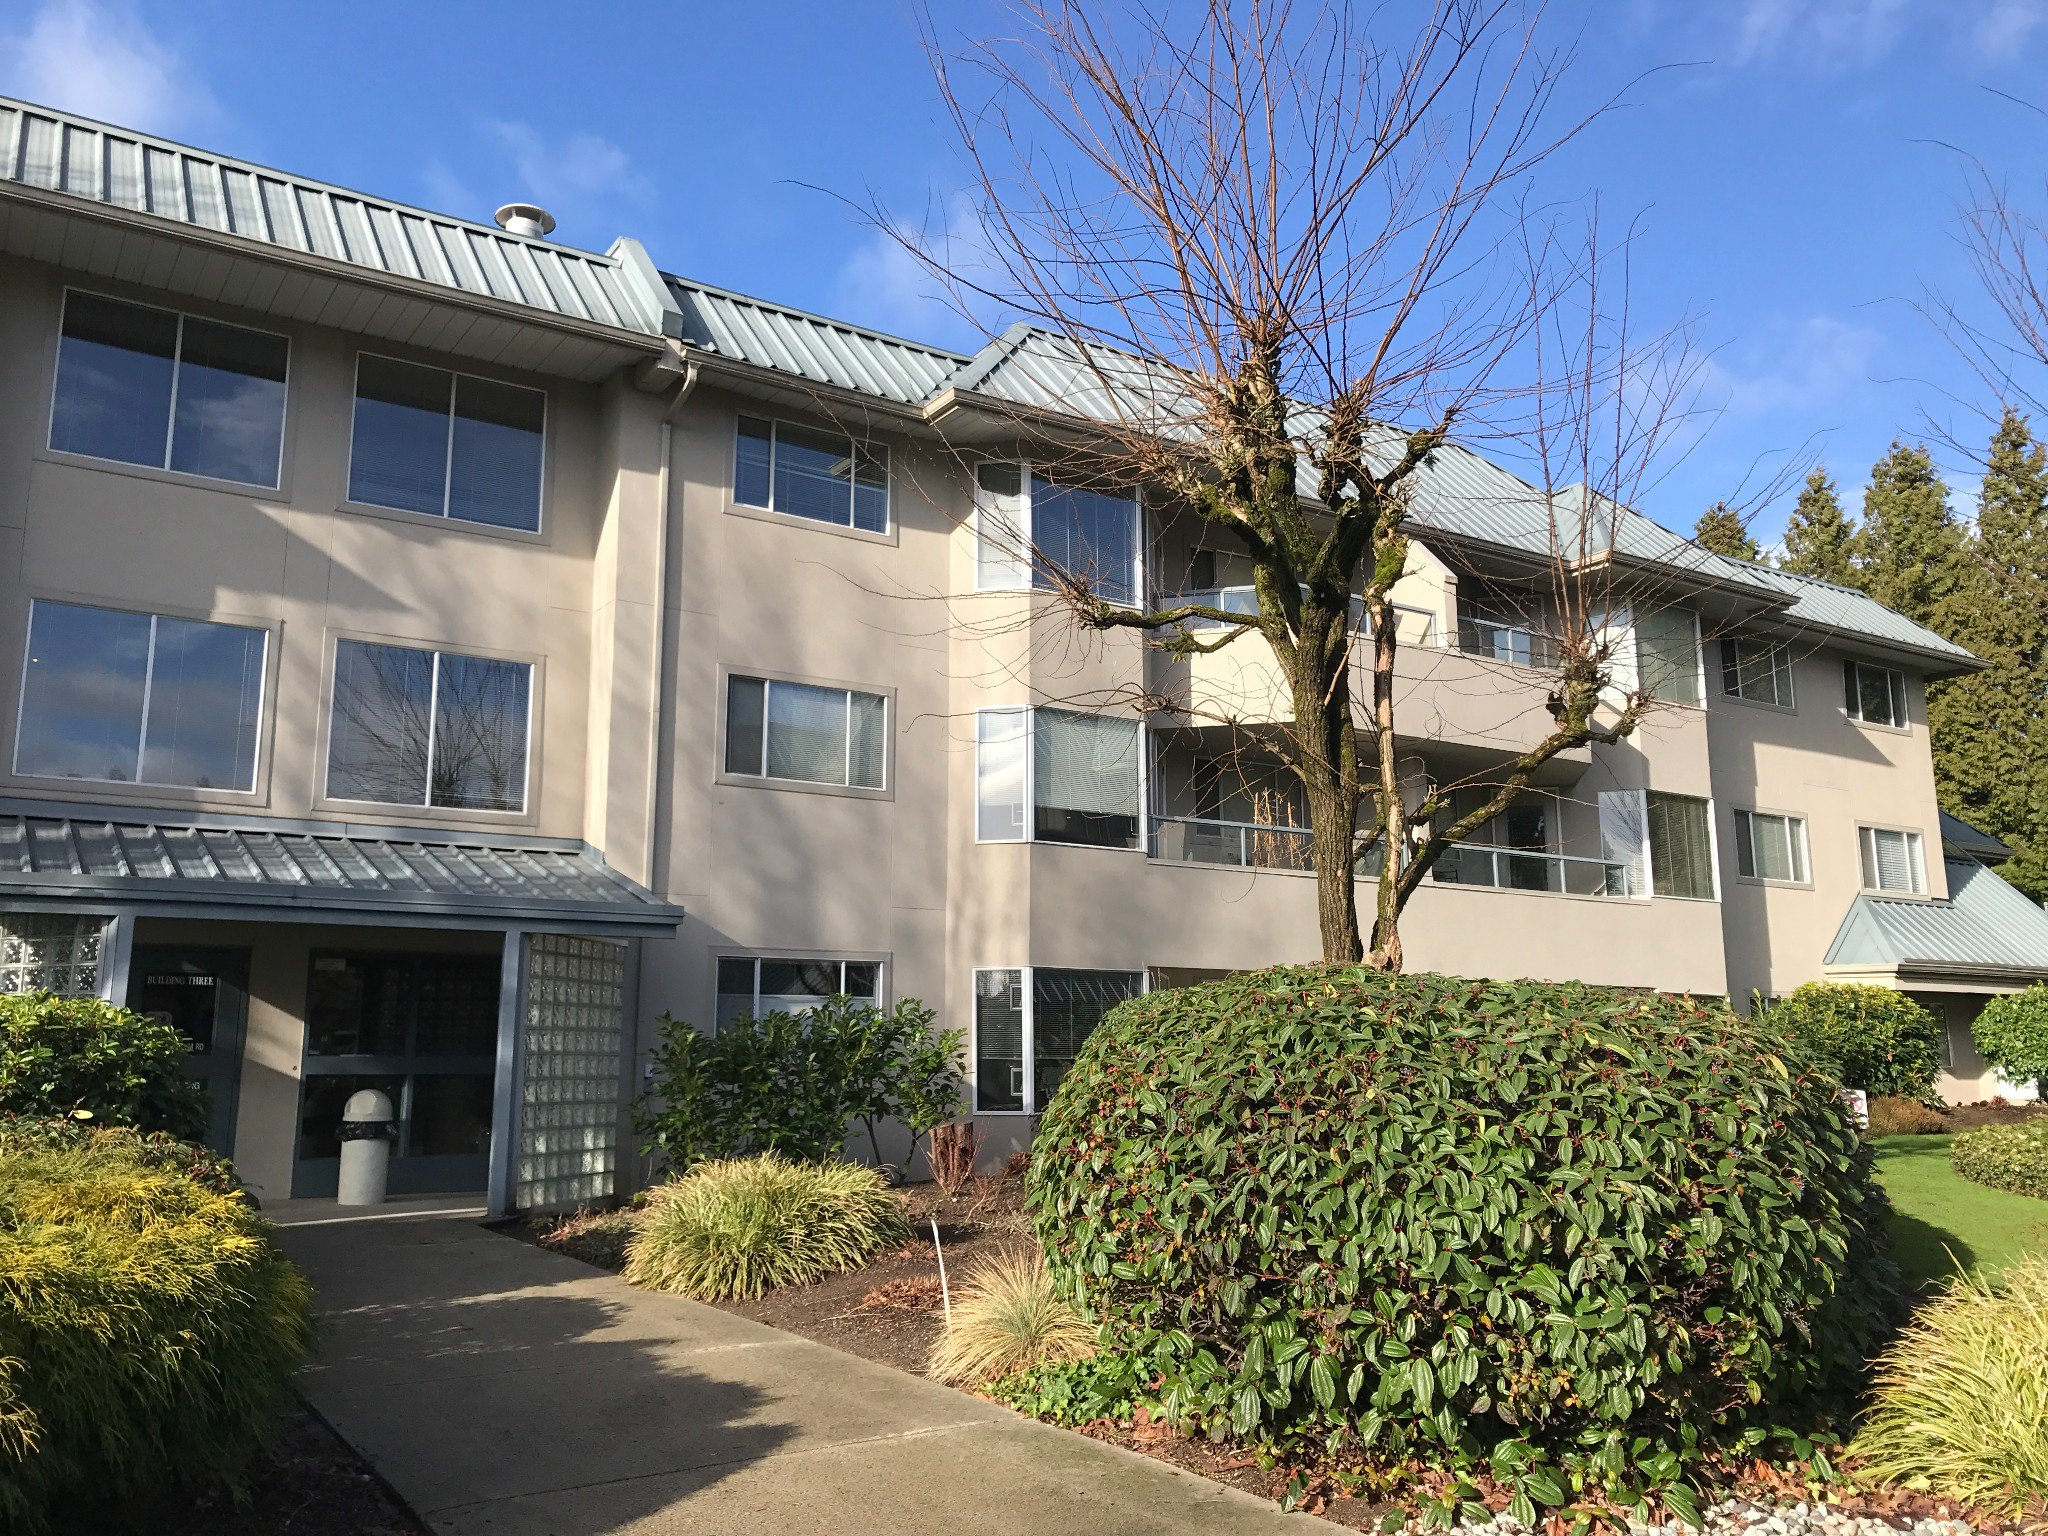 Photo 1: Photos: #329 2700 McCallum Rd. in Abbotsford: Central Abbotsford Condo for rent